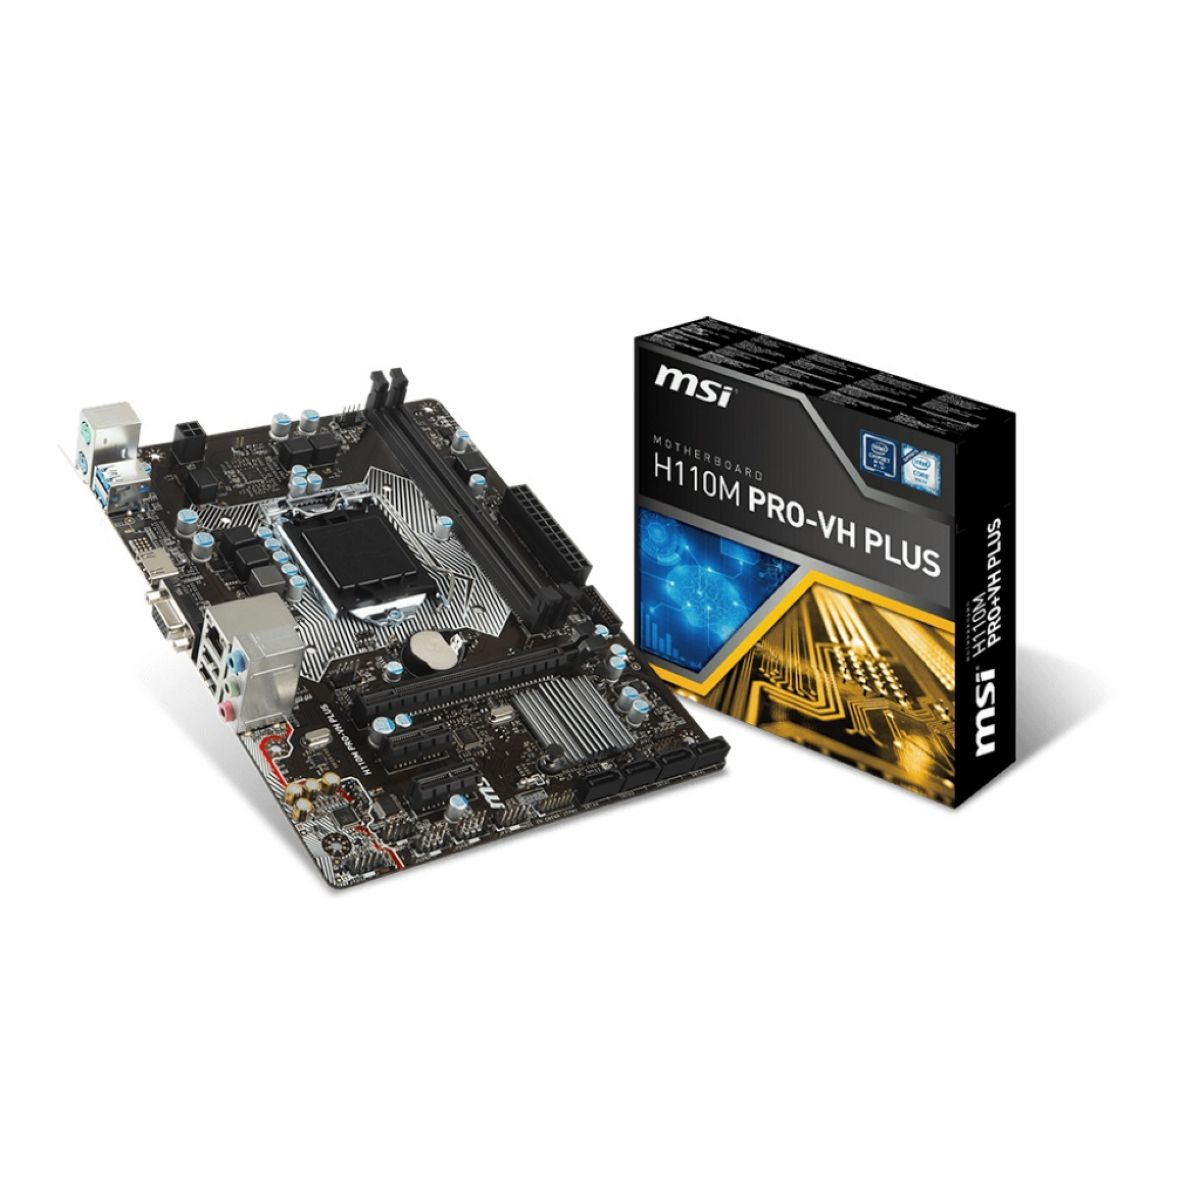 Motherboard Msi H110m Pro-vh Plus S1151